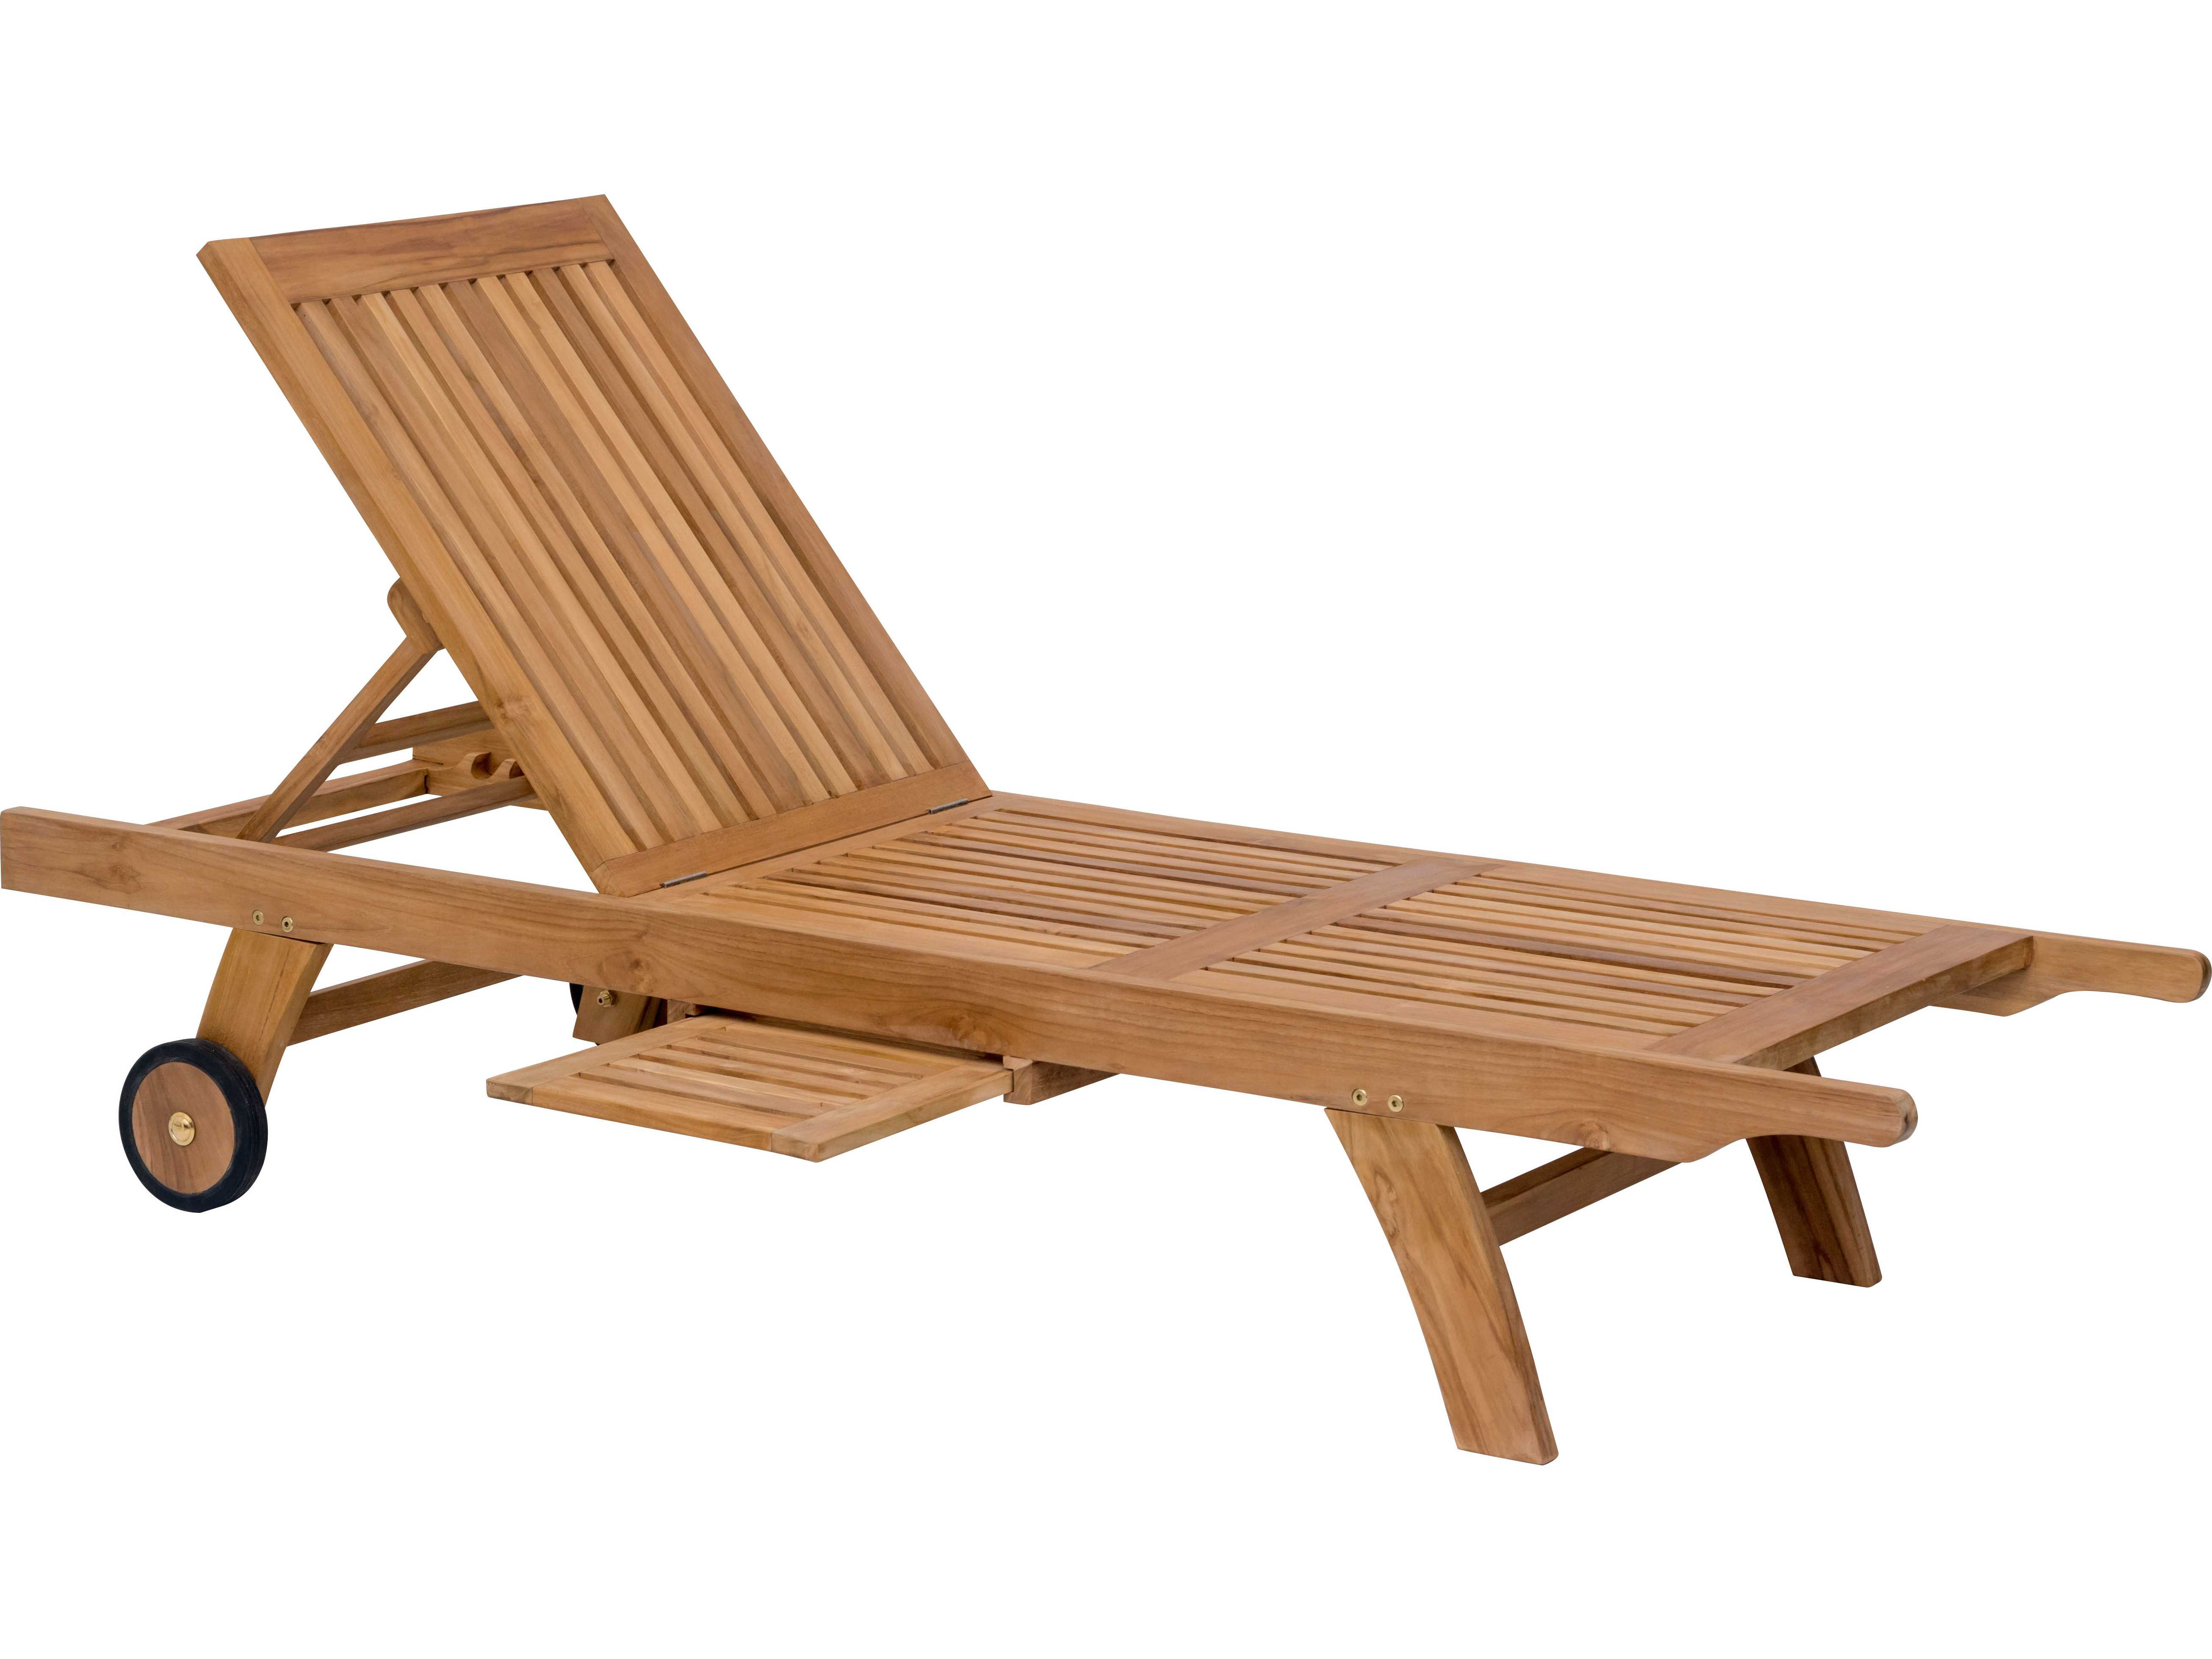 teak chaise lounge chairs sale dollar tree pumpkin chair covers zuo outdoor starboard in natural 703560